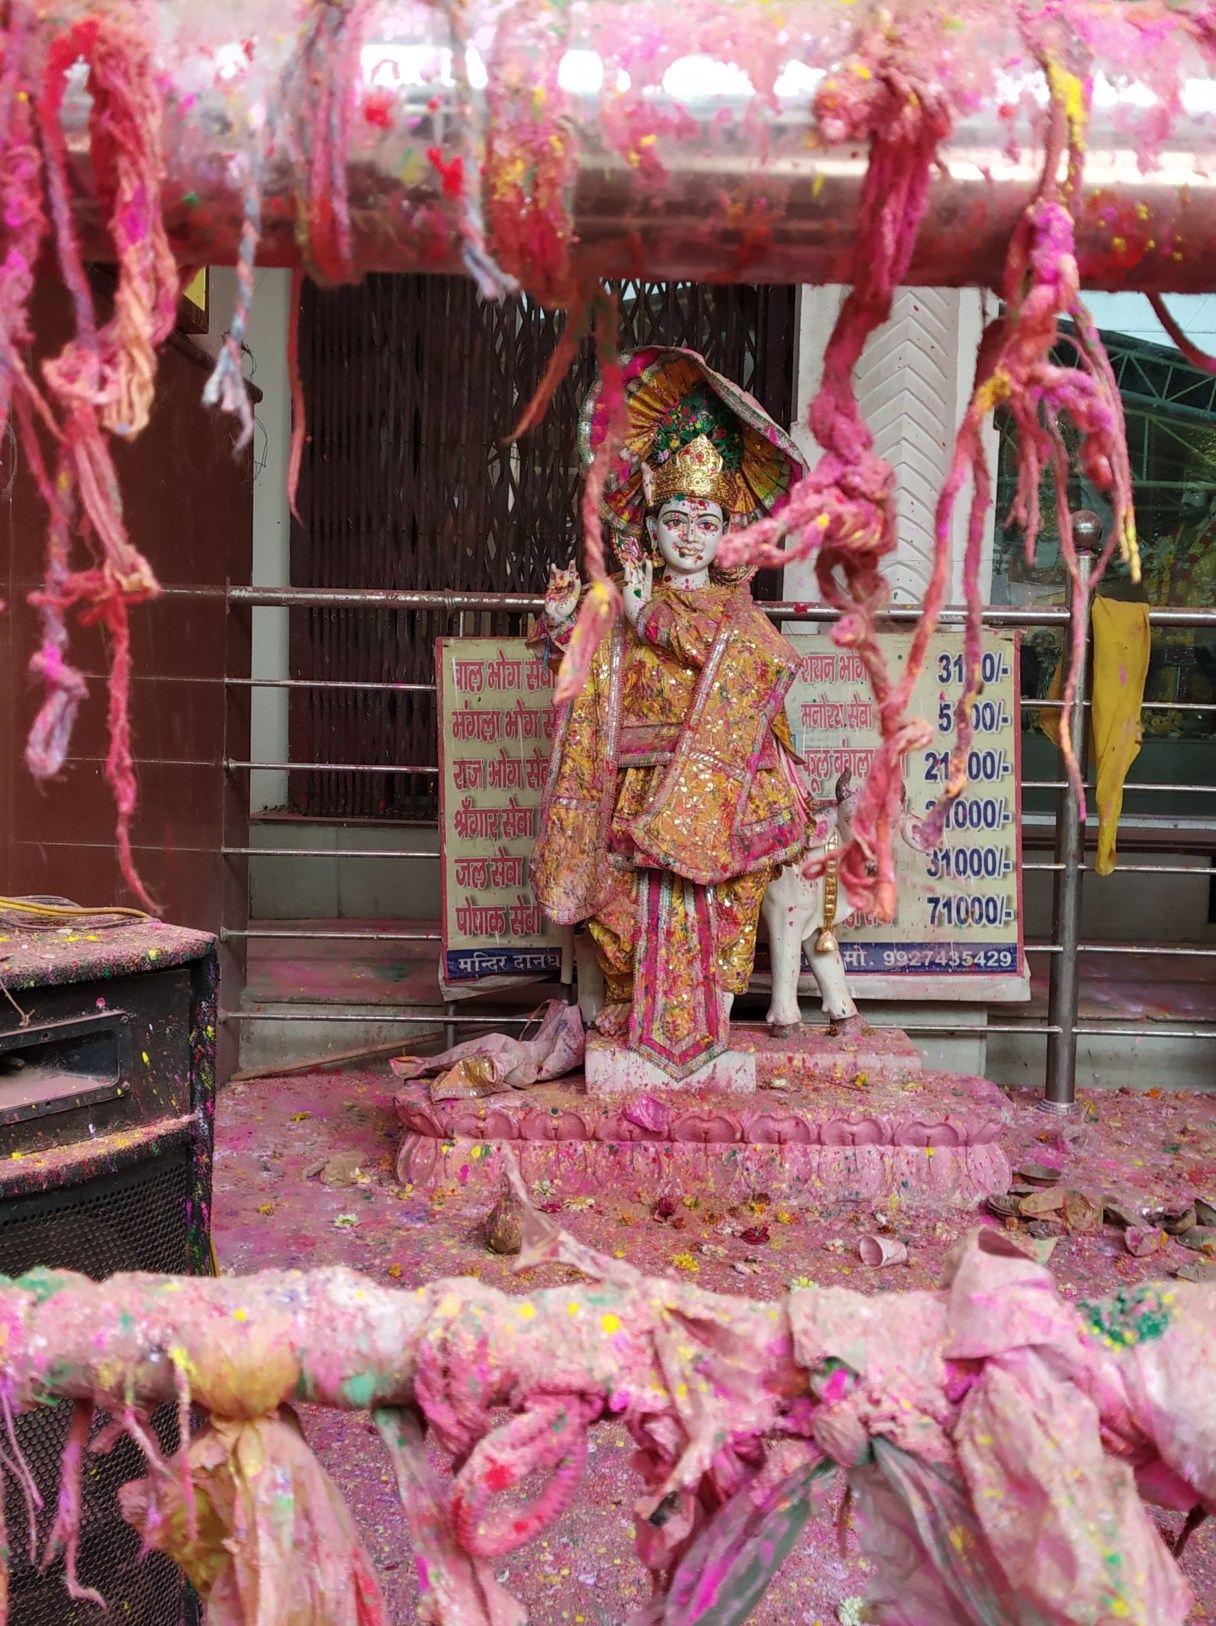 Celebrating Holi in Mathura-Vrindavan